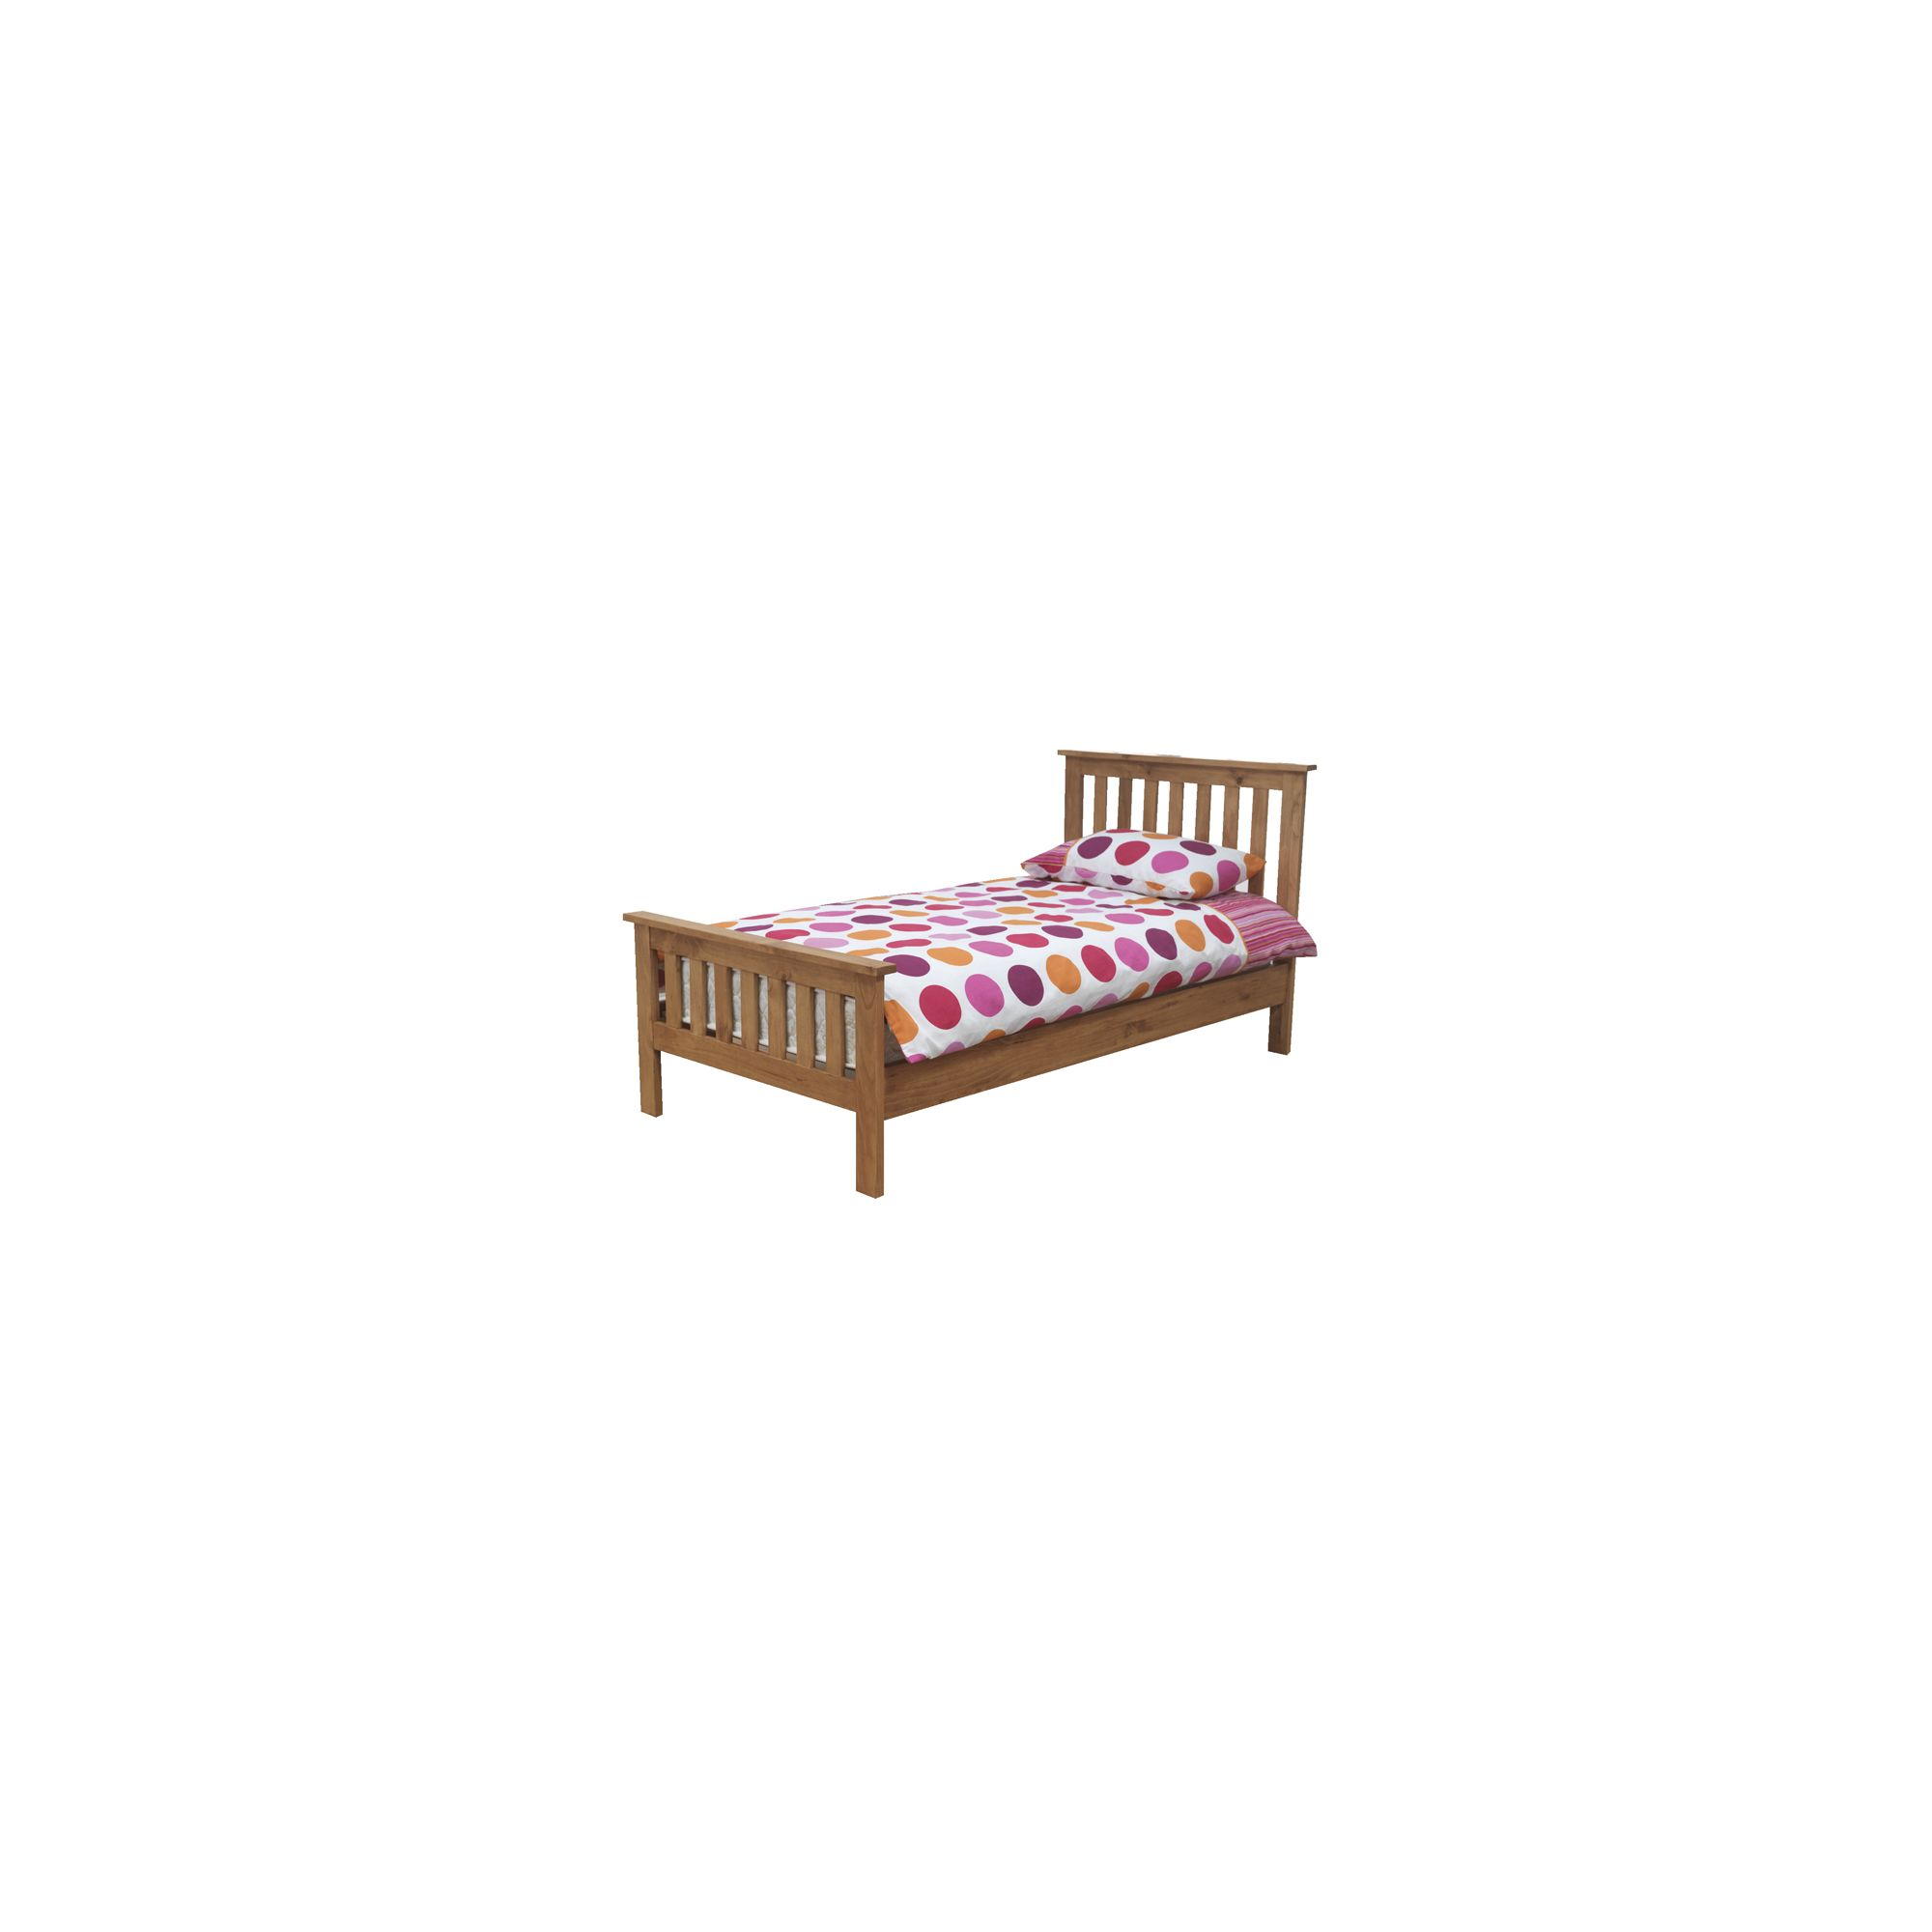 Furniture Link Devon Bed Frame - King at Tesco Direct